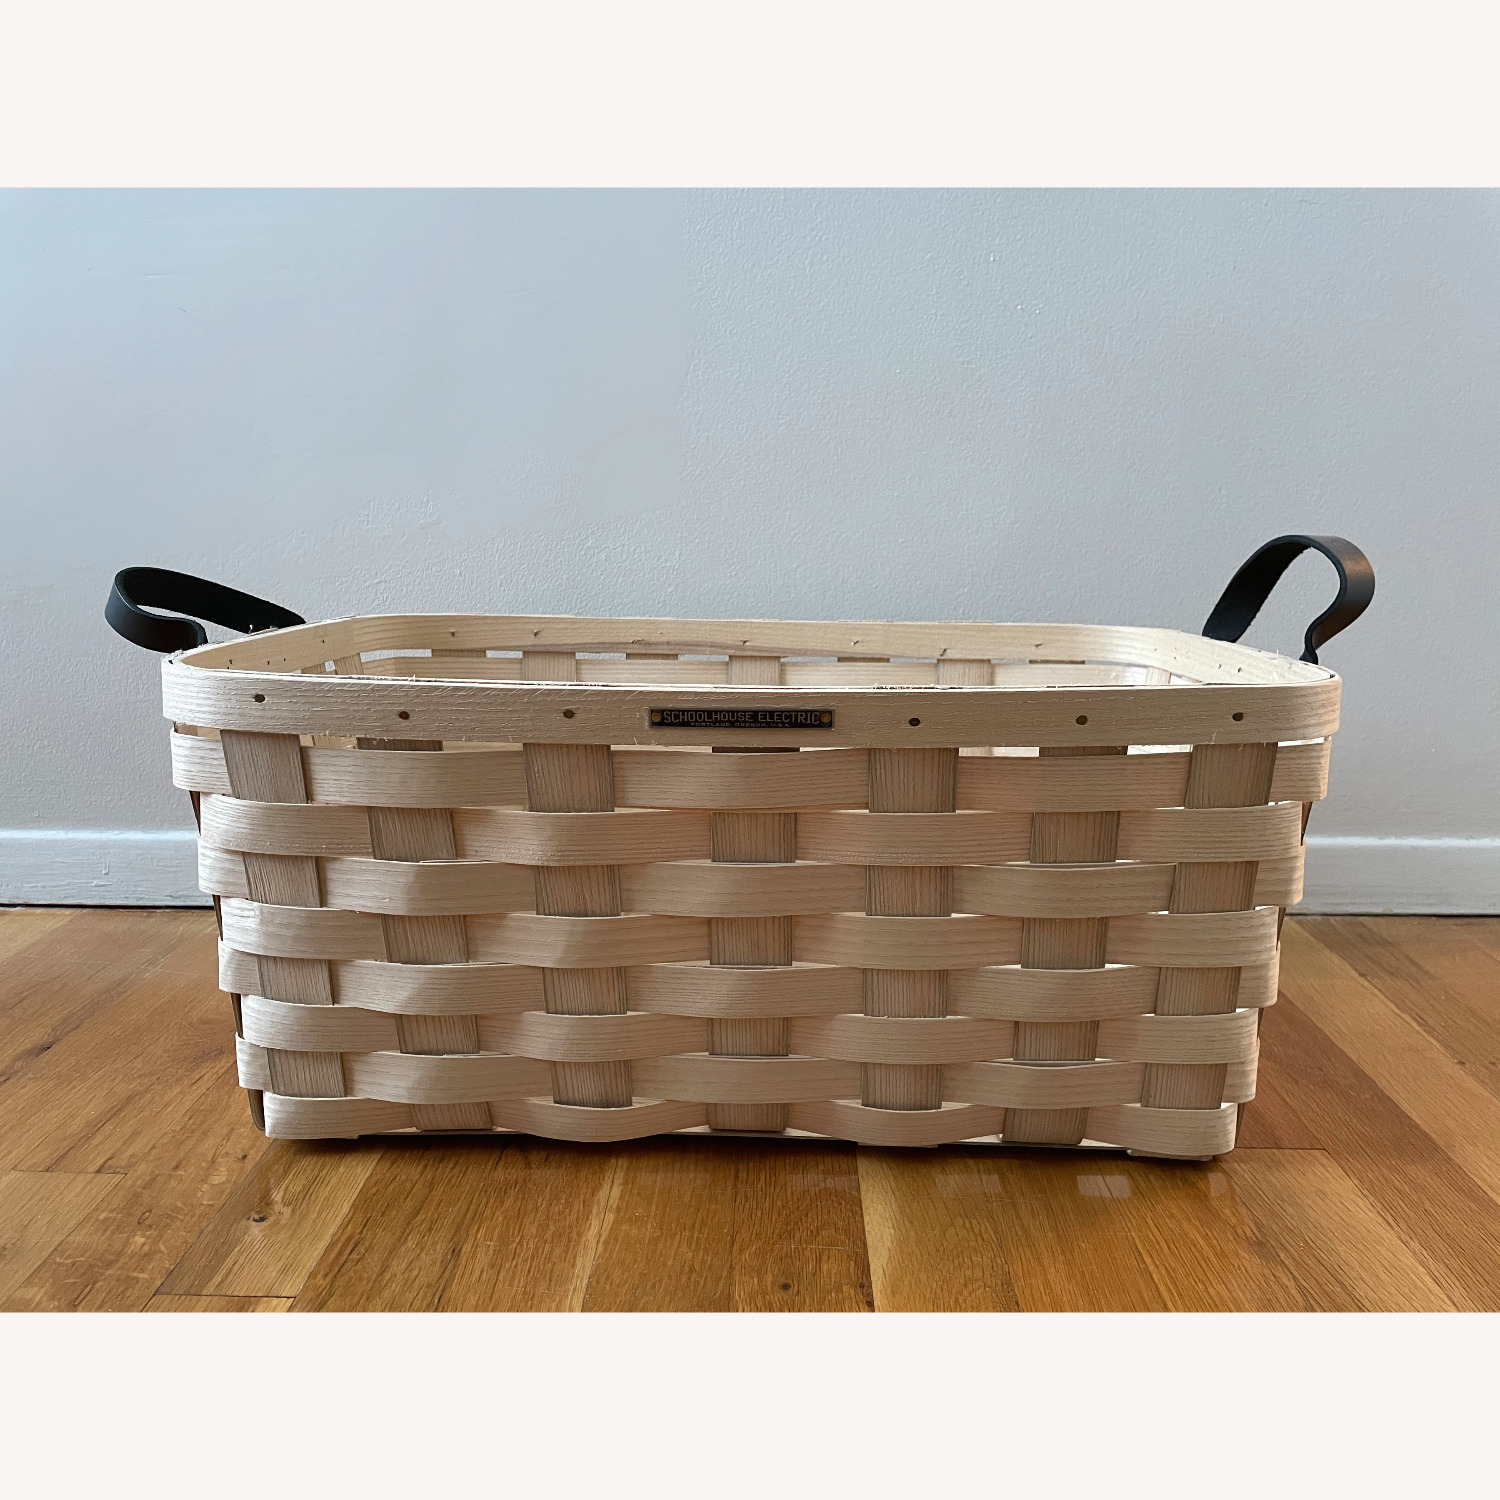 Schoolhouse Electric Lg Rectangle White Ash Basket - image-1